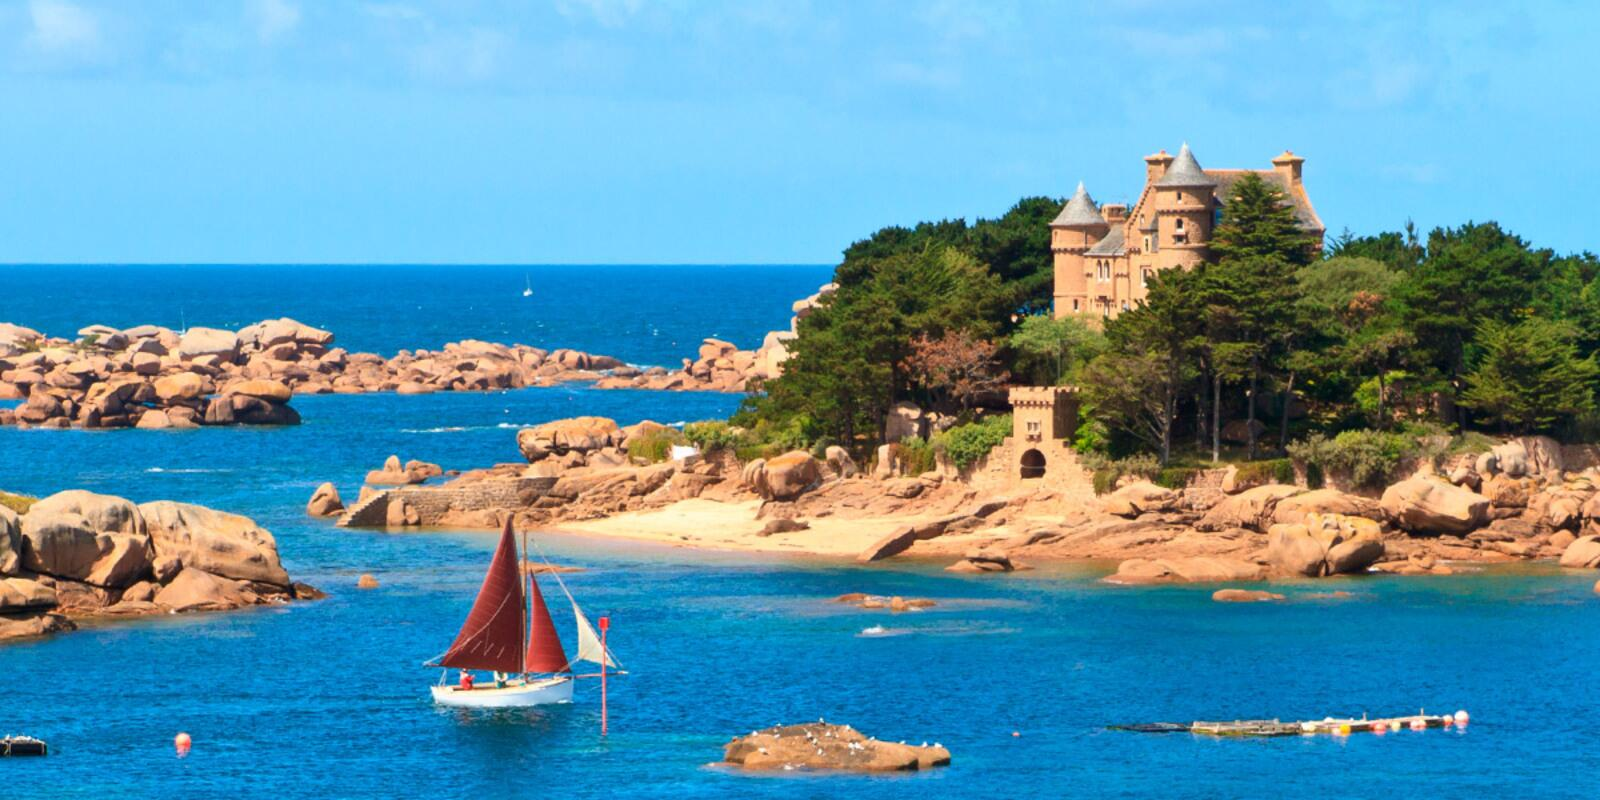 Discover the magnificent landscapes of the pink granite coast by sailboat